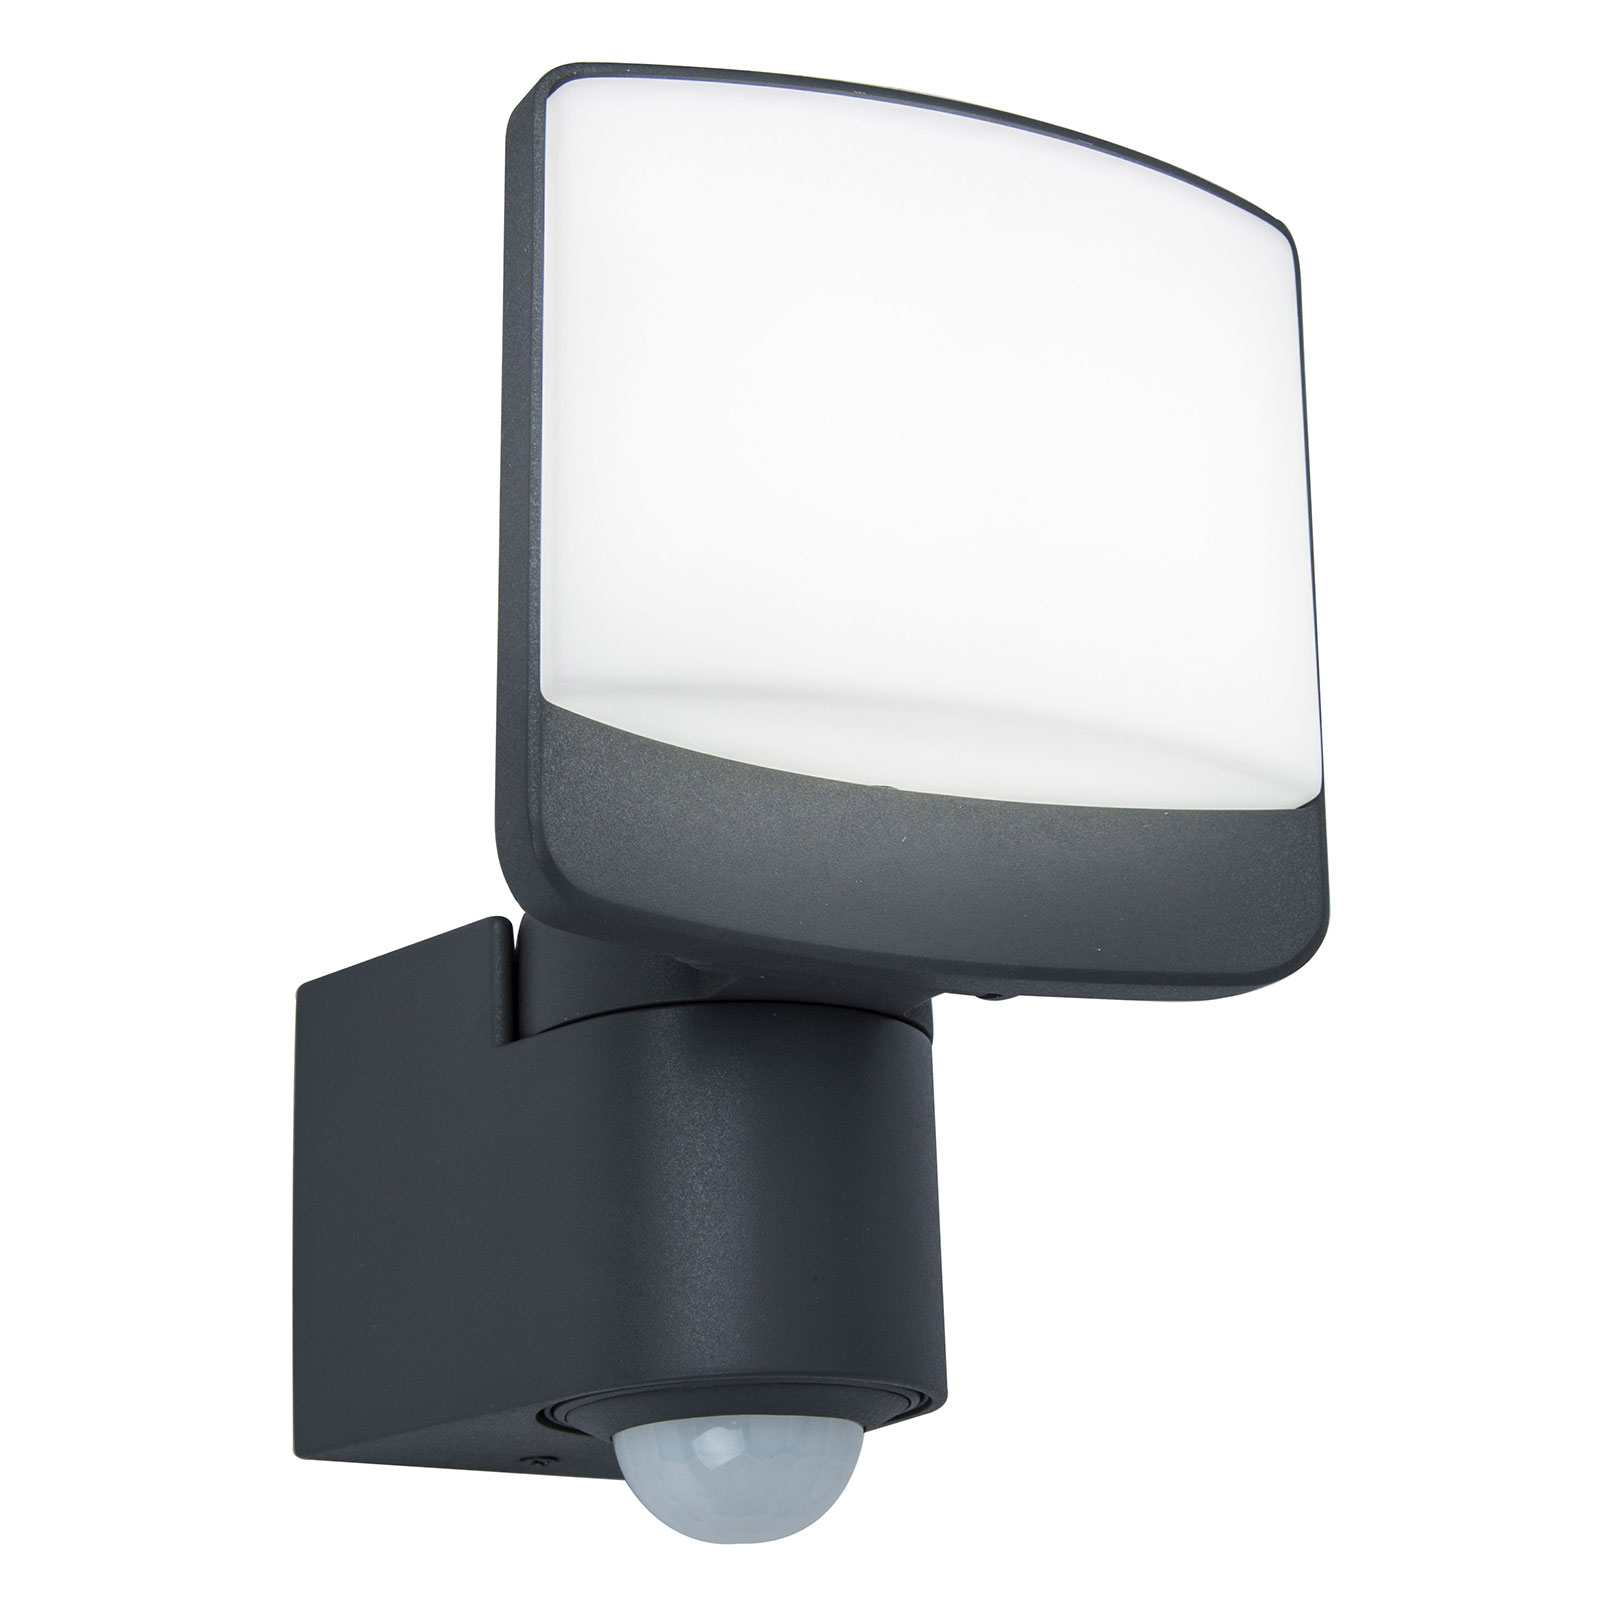 LED buitenspot Sunshine met sensor